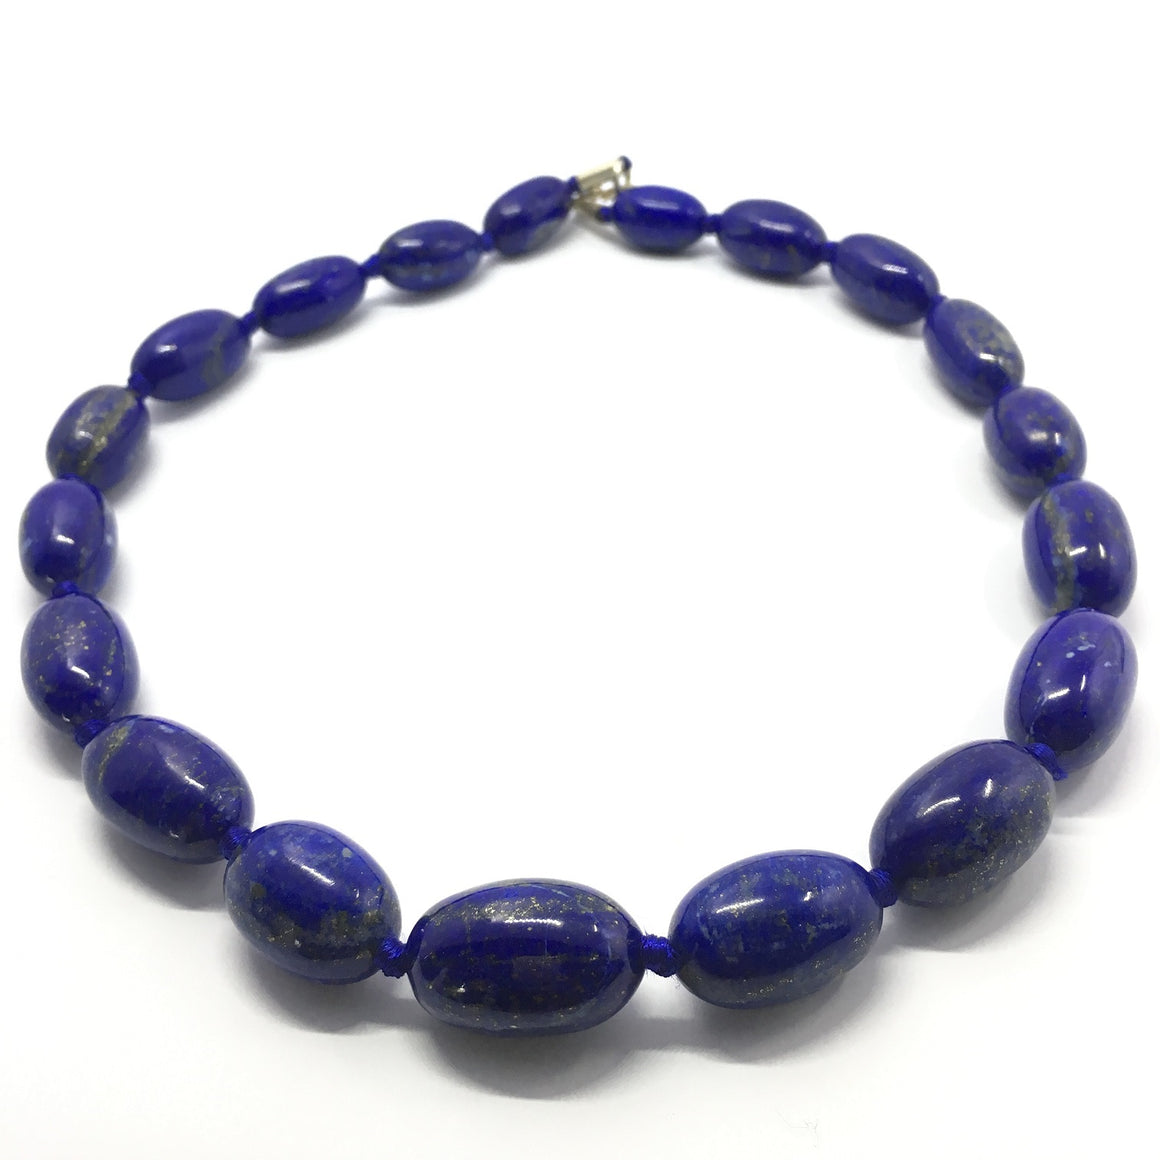 Lapis Lazuli Necklace - Lapis Necklace 9 Oval Beads Necklace- 653.5 ct